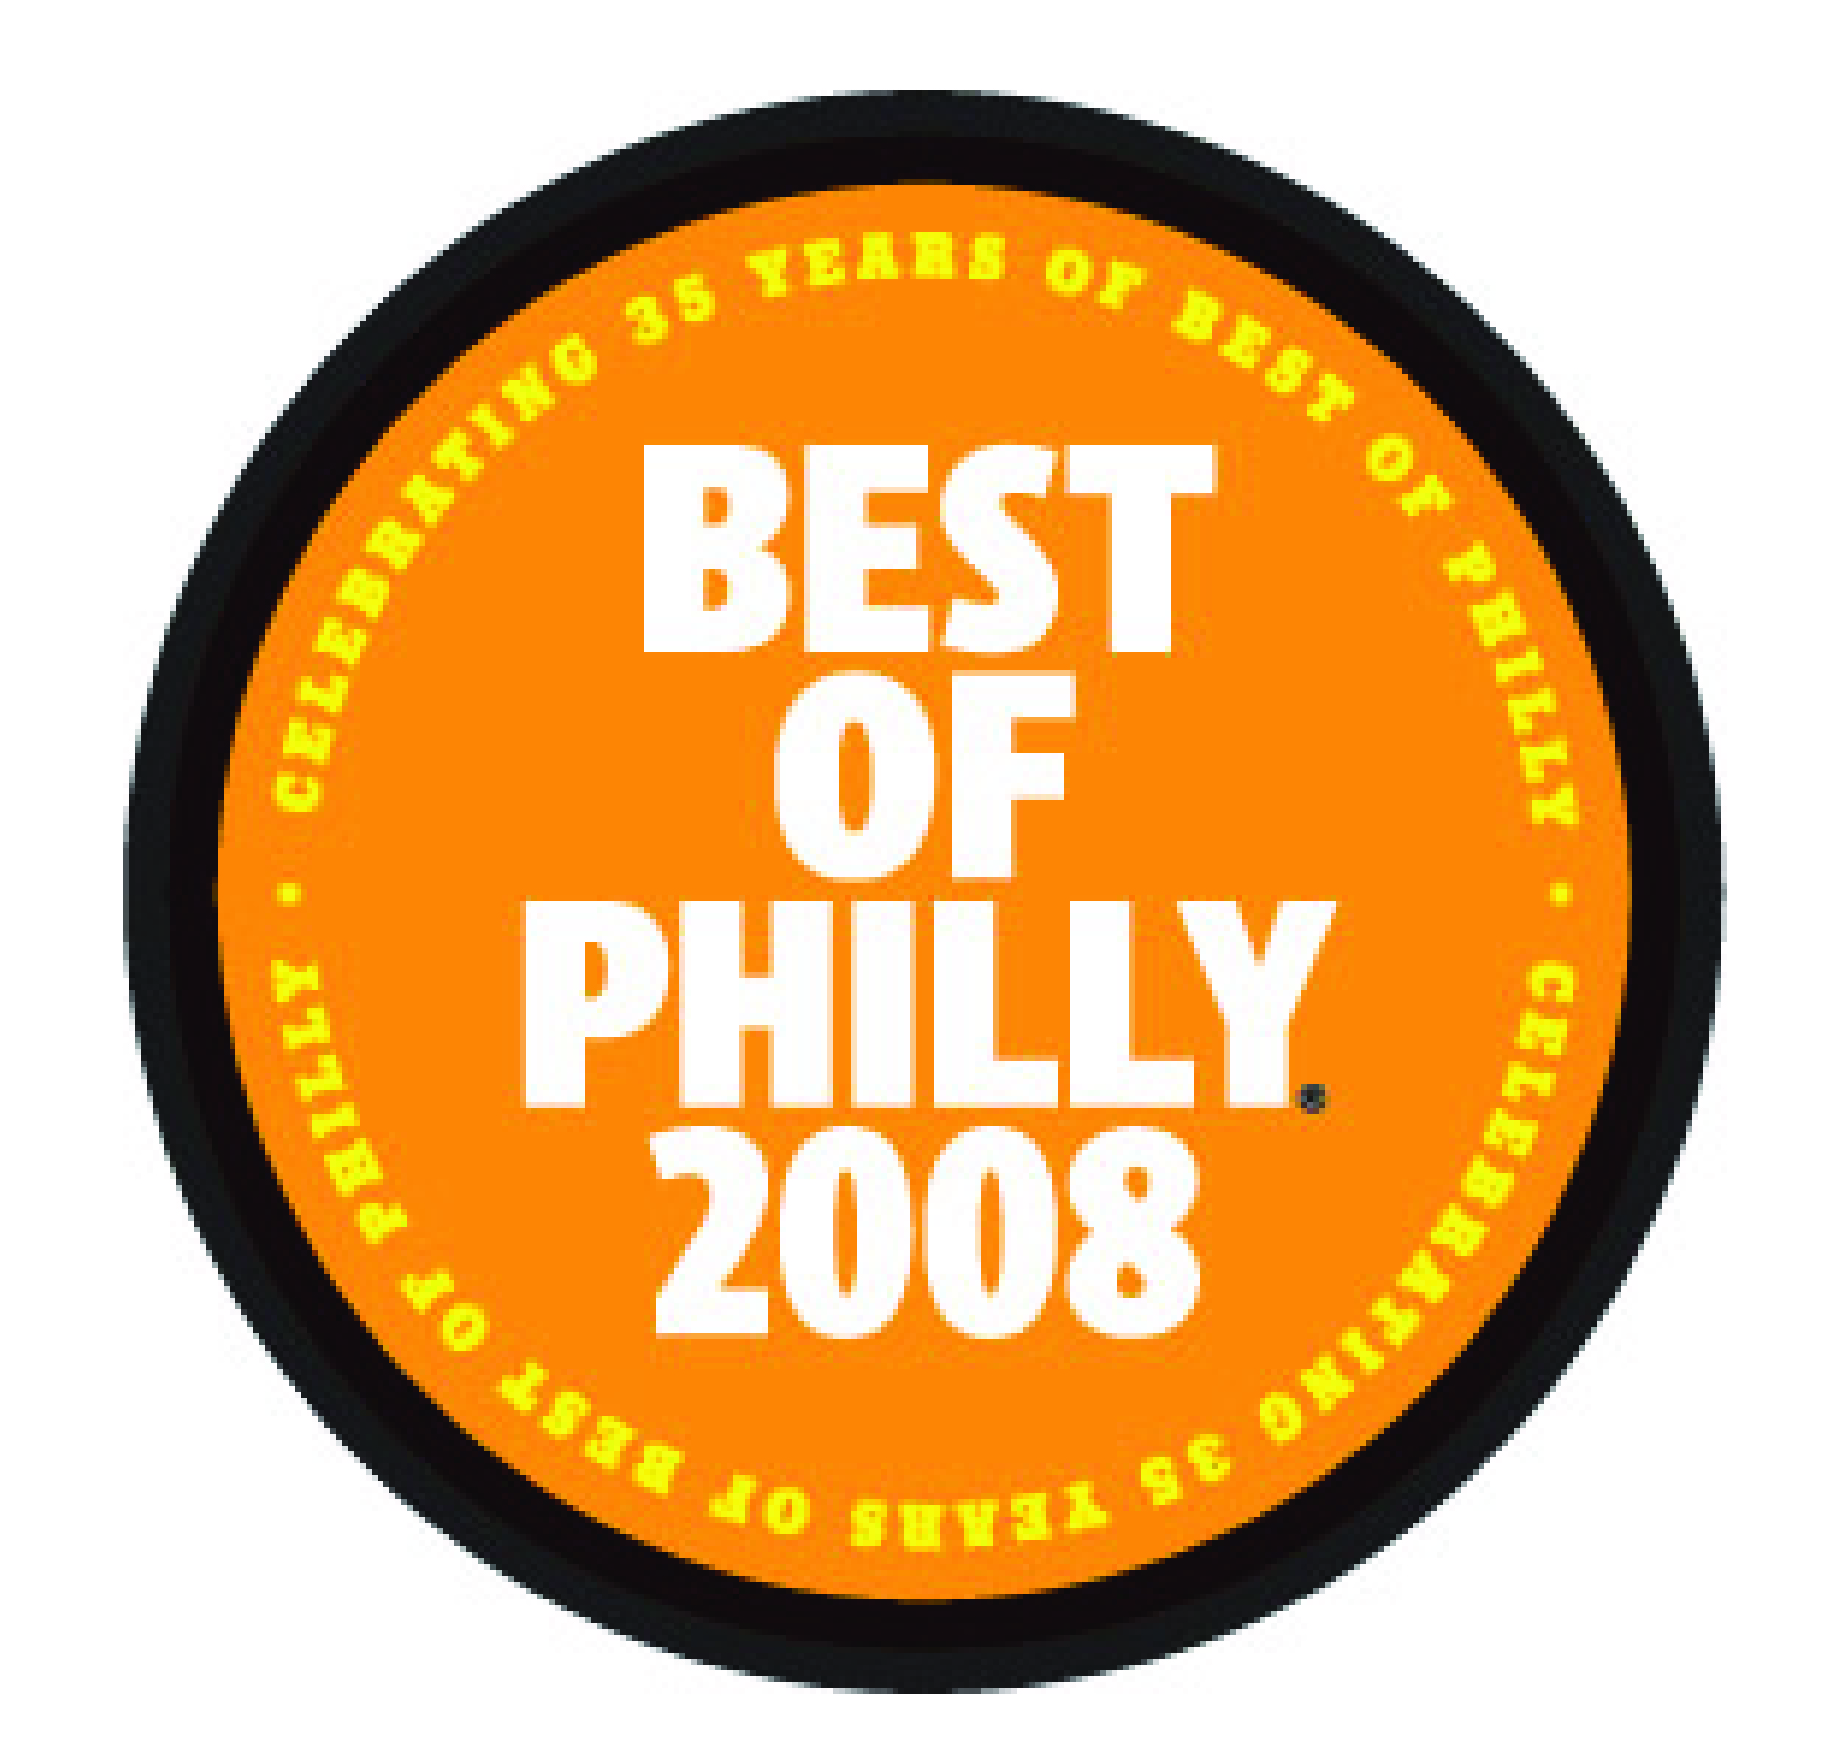 BestofPhilly2008